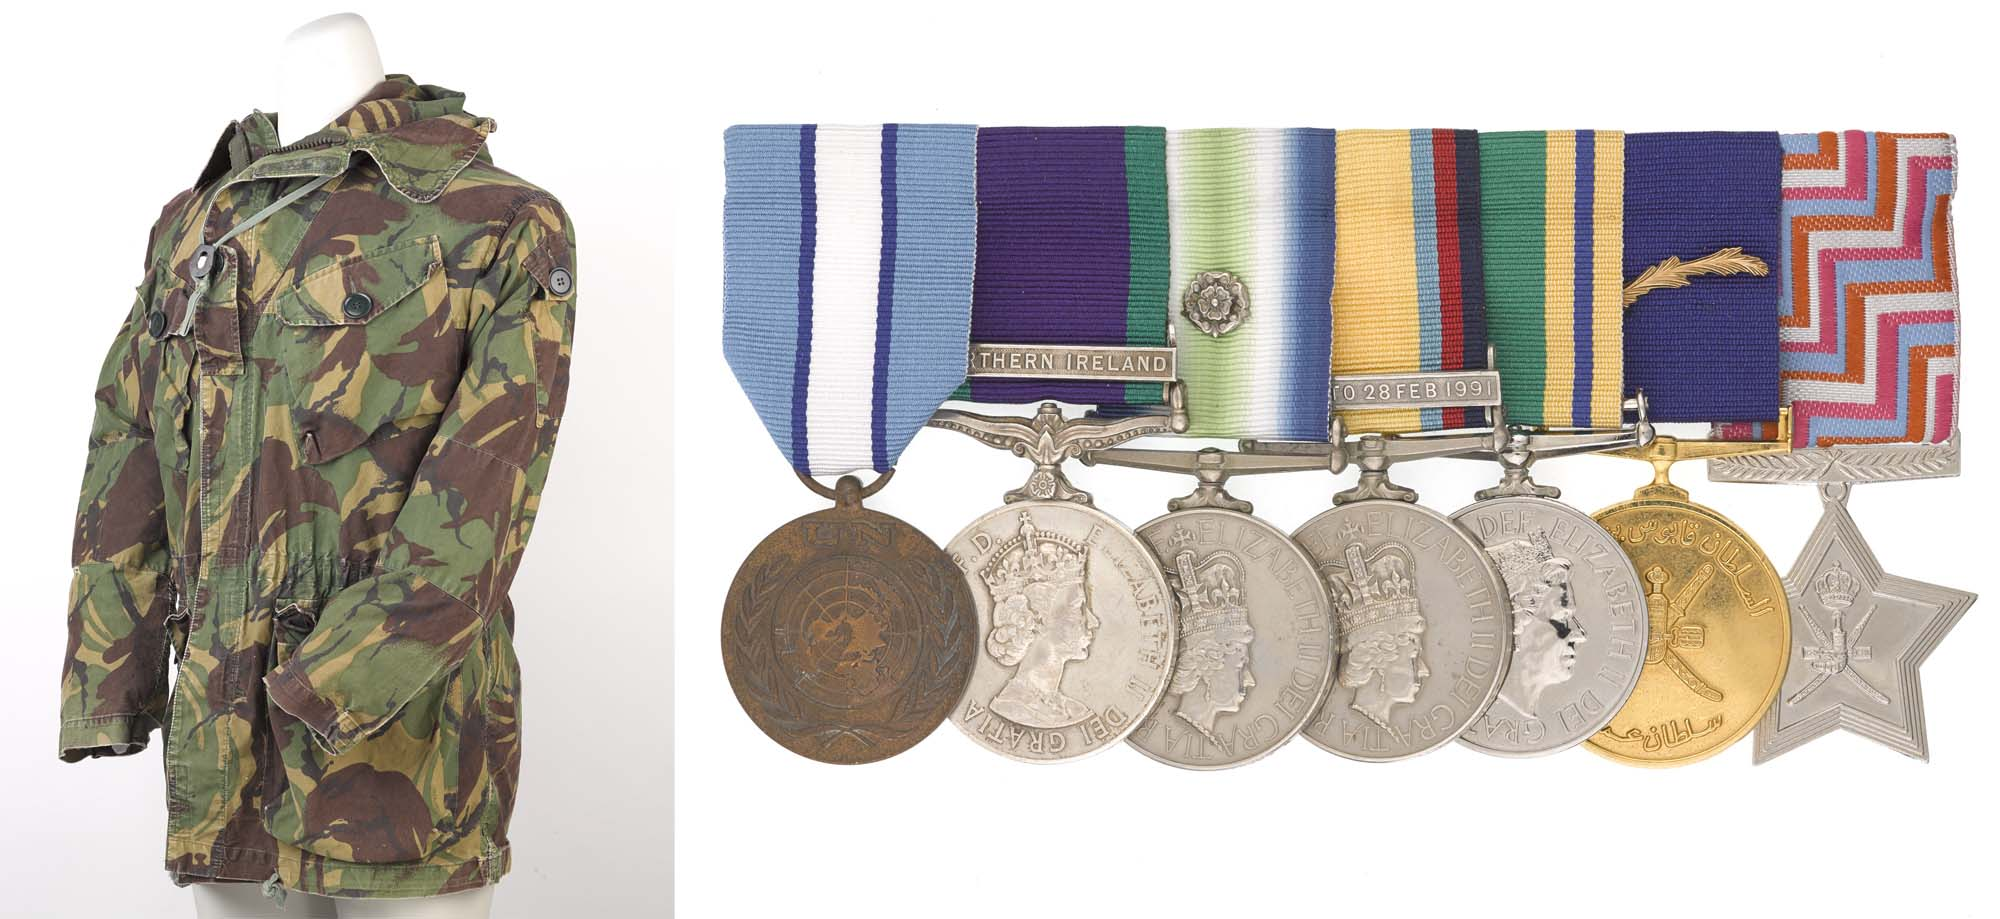 a composite photo of a camouflage jacket and a group of medals